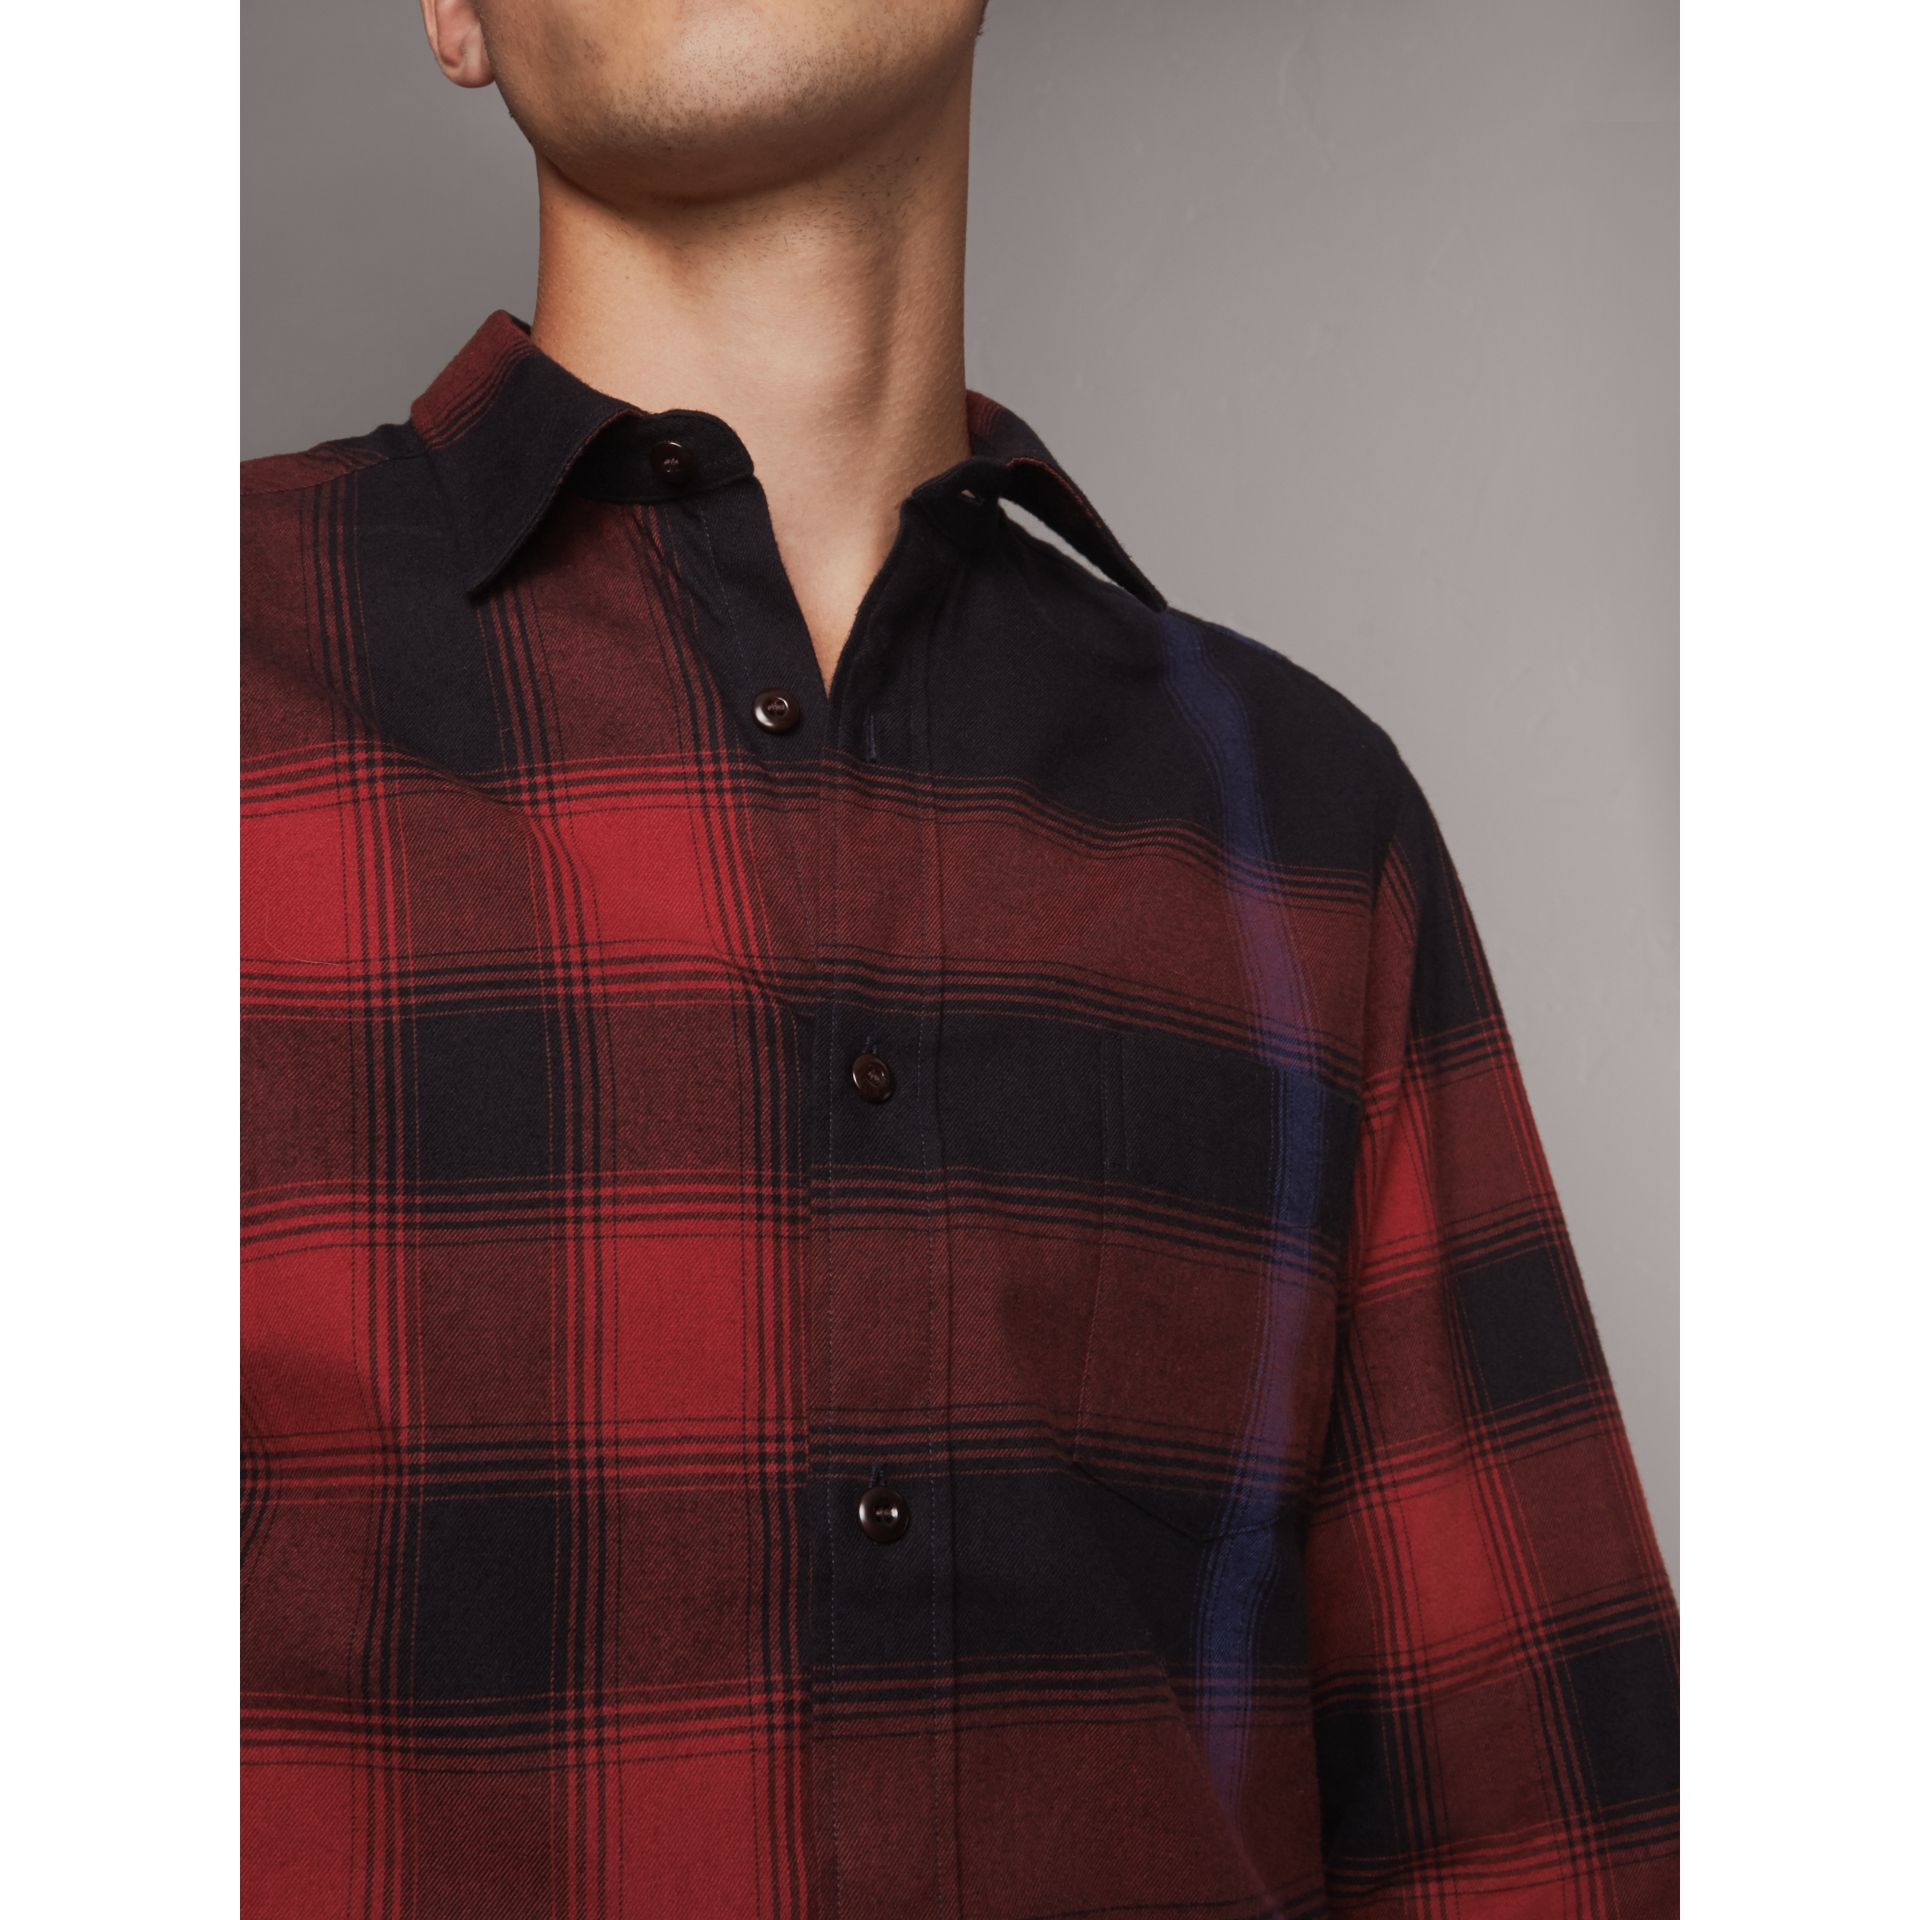 Ombré Check Cotton Flannel Shirt in Crimson Red - Men | Burberry - gallery image 1